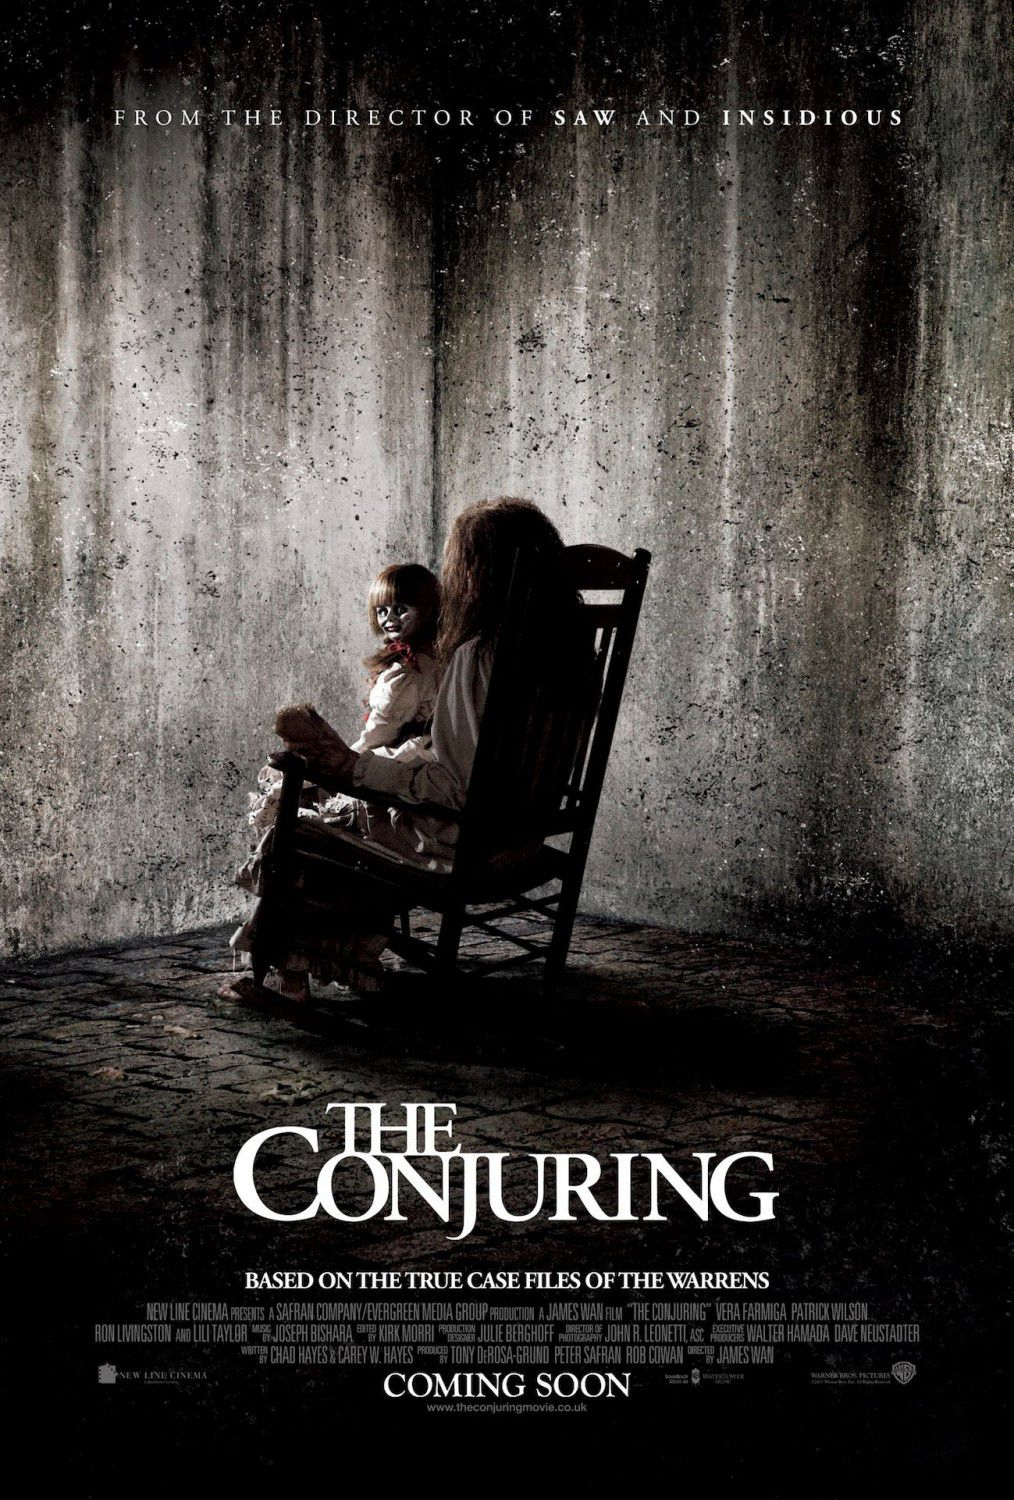 The Conjuring - horror poster